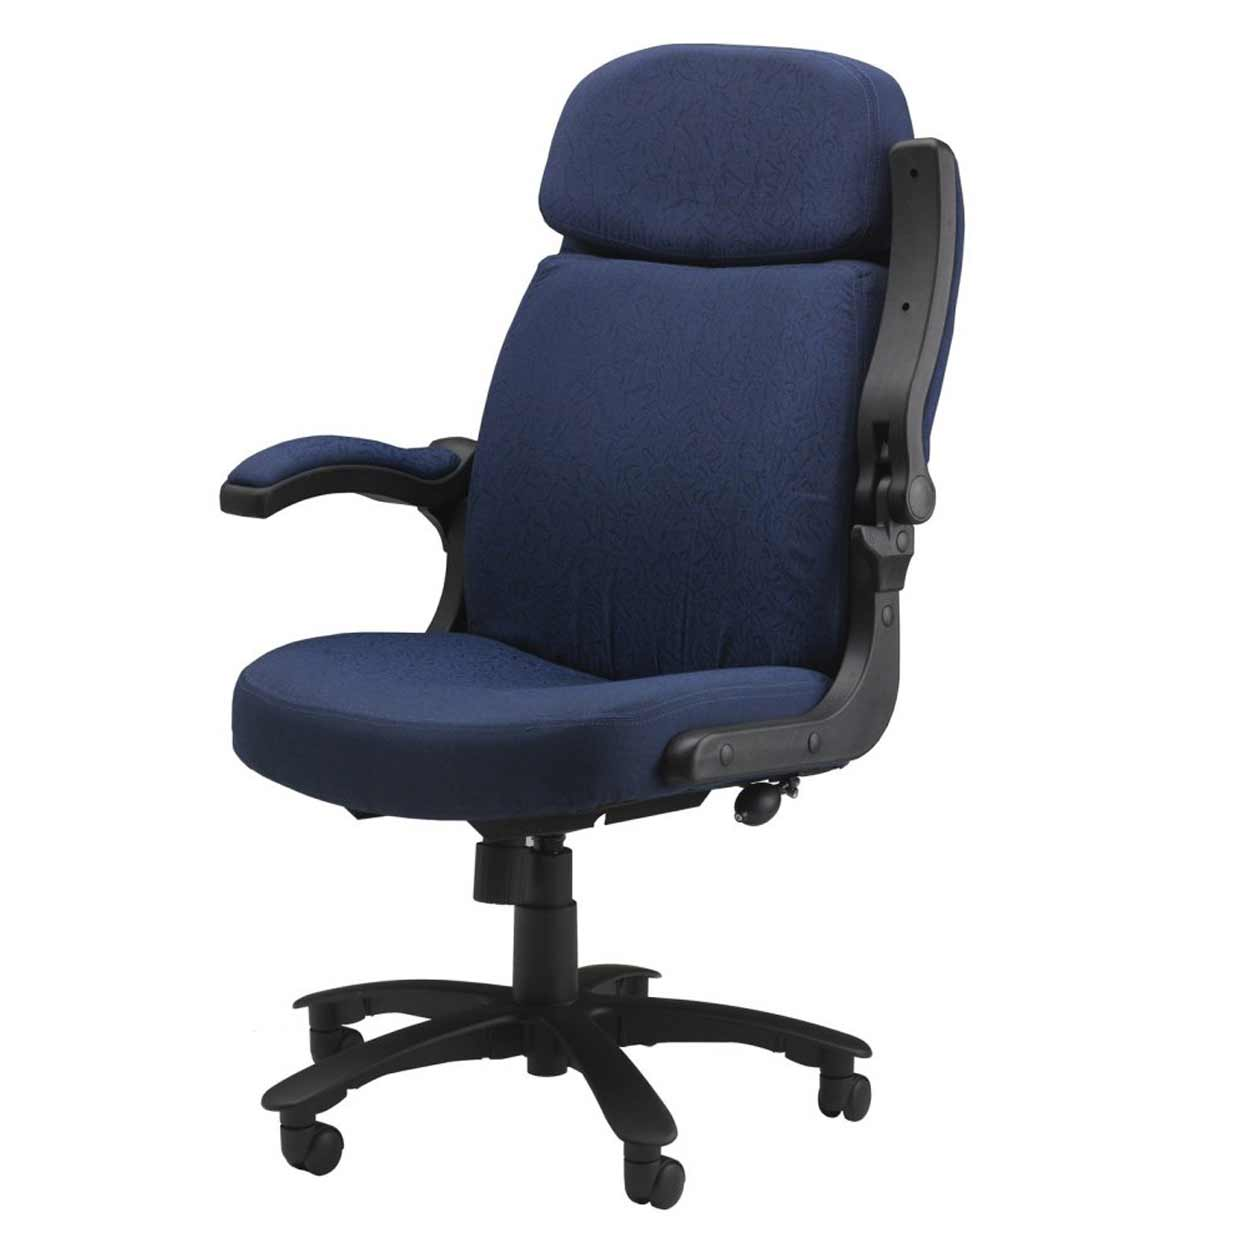 Tall Desk Chairs for Tall People